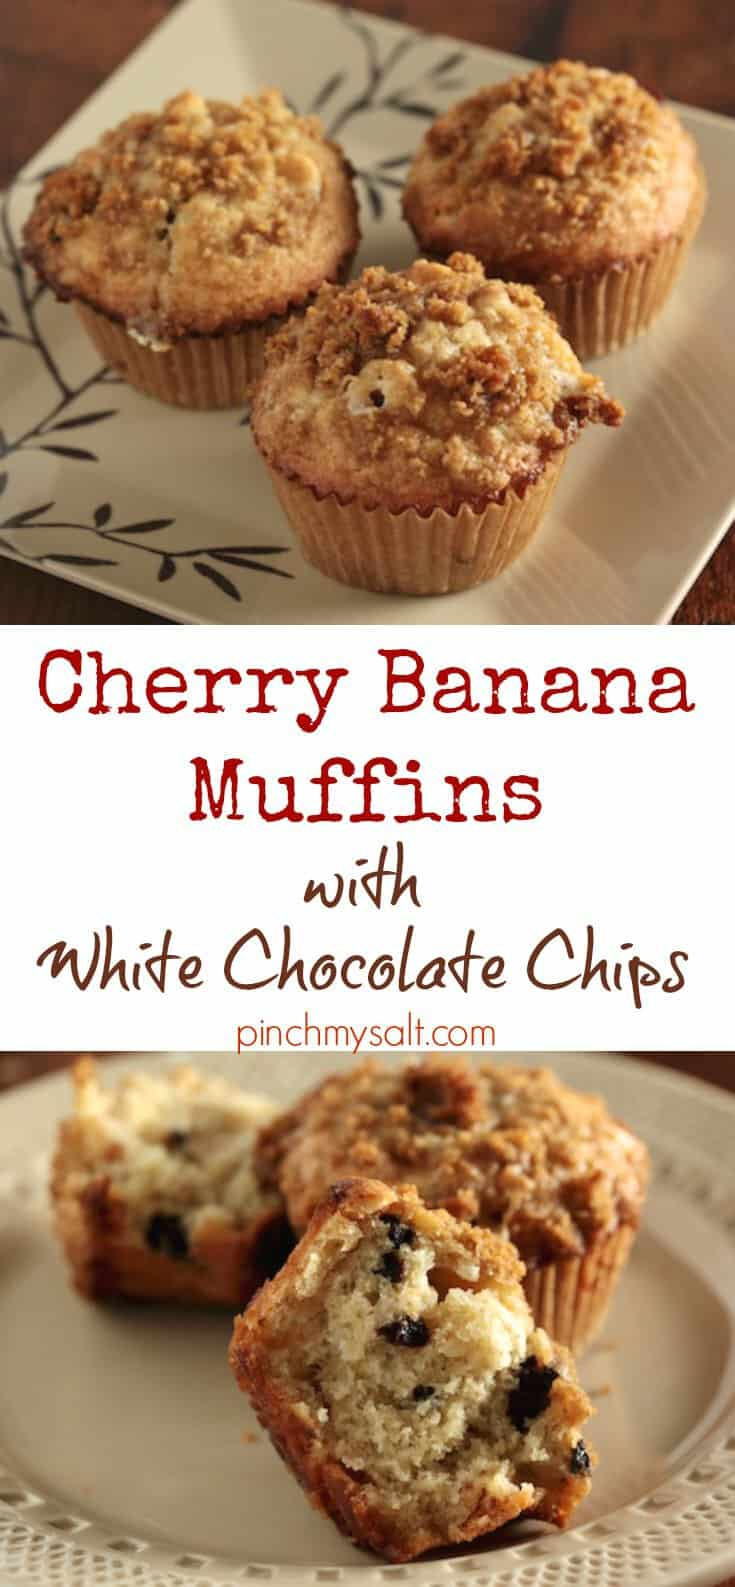 Cherry Banana Muffins with White Chocolate Chips | pinchmysalt.com